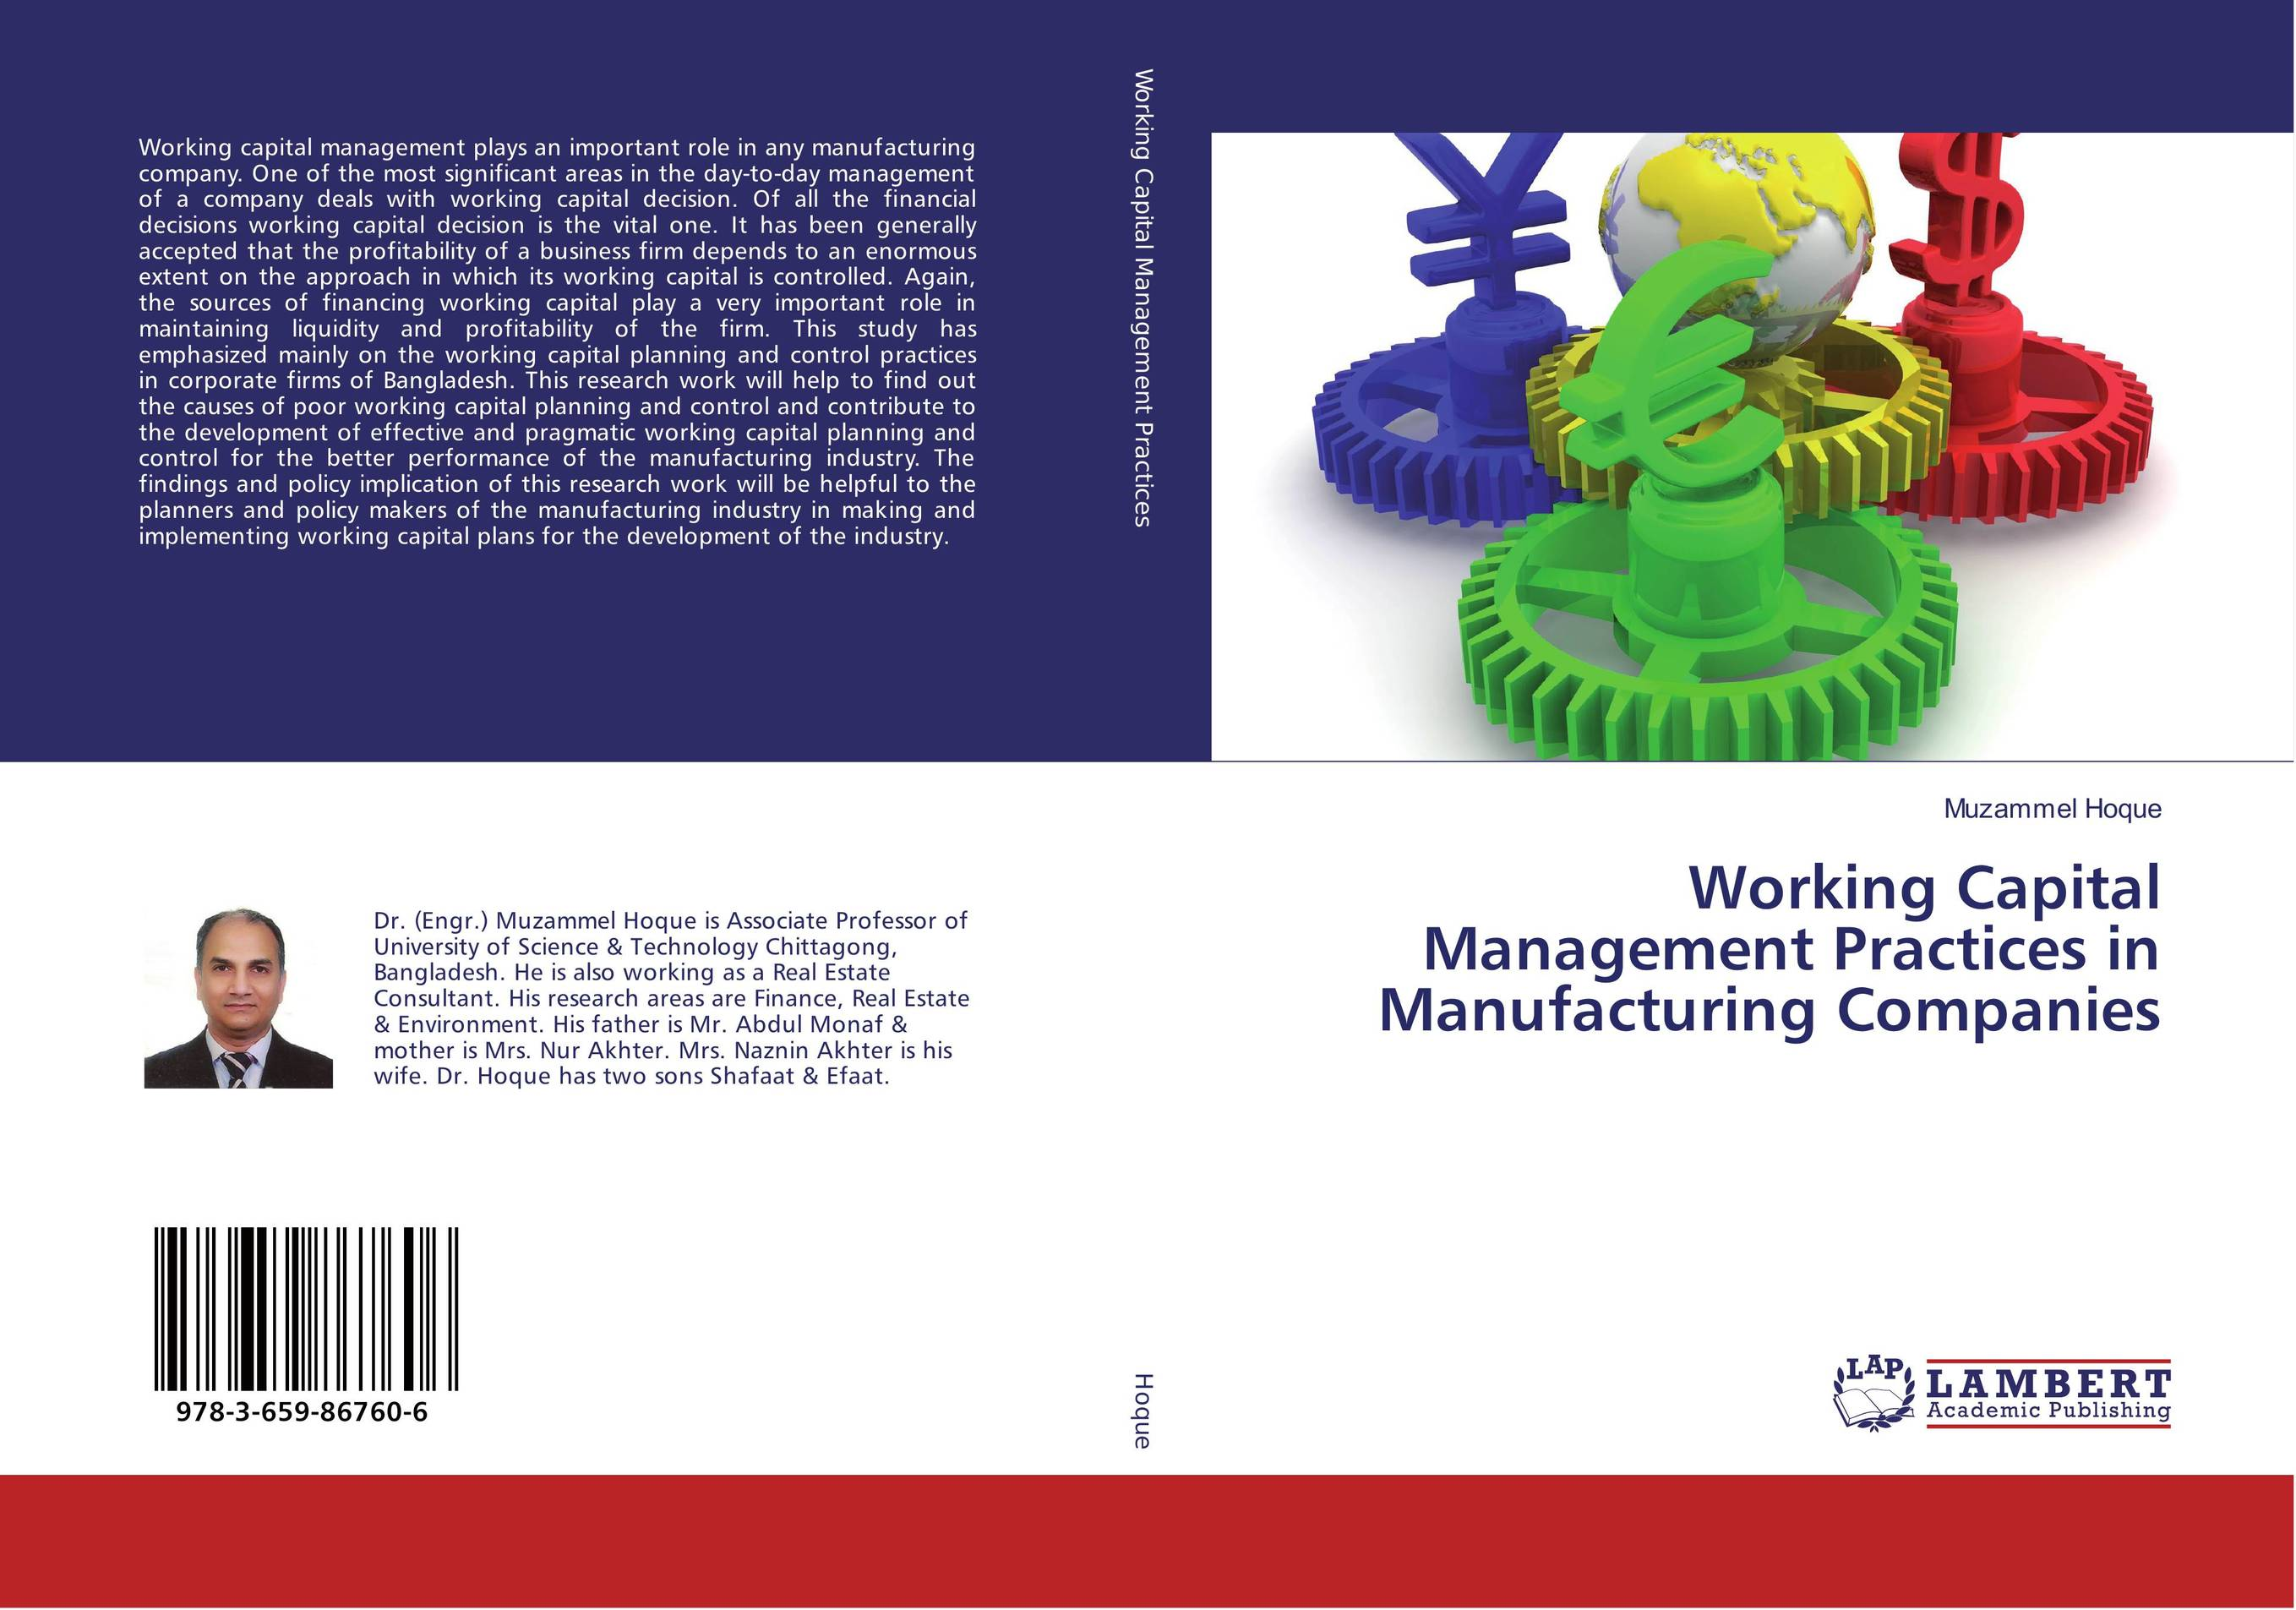 Working Capital Management Practices in Manufacturing Companies simon archer islamic capital markets and products managing capital and liquidity requirements under basel iii